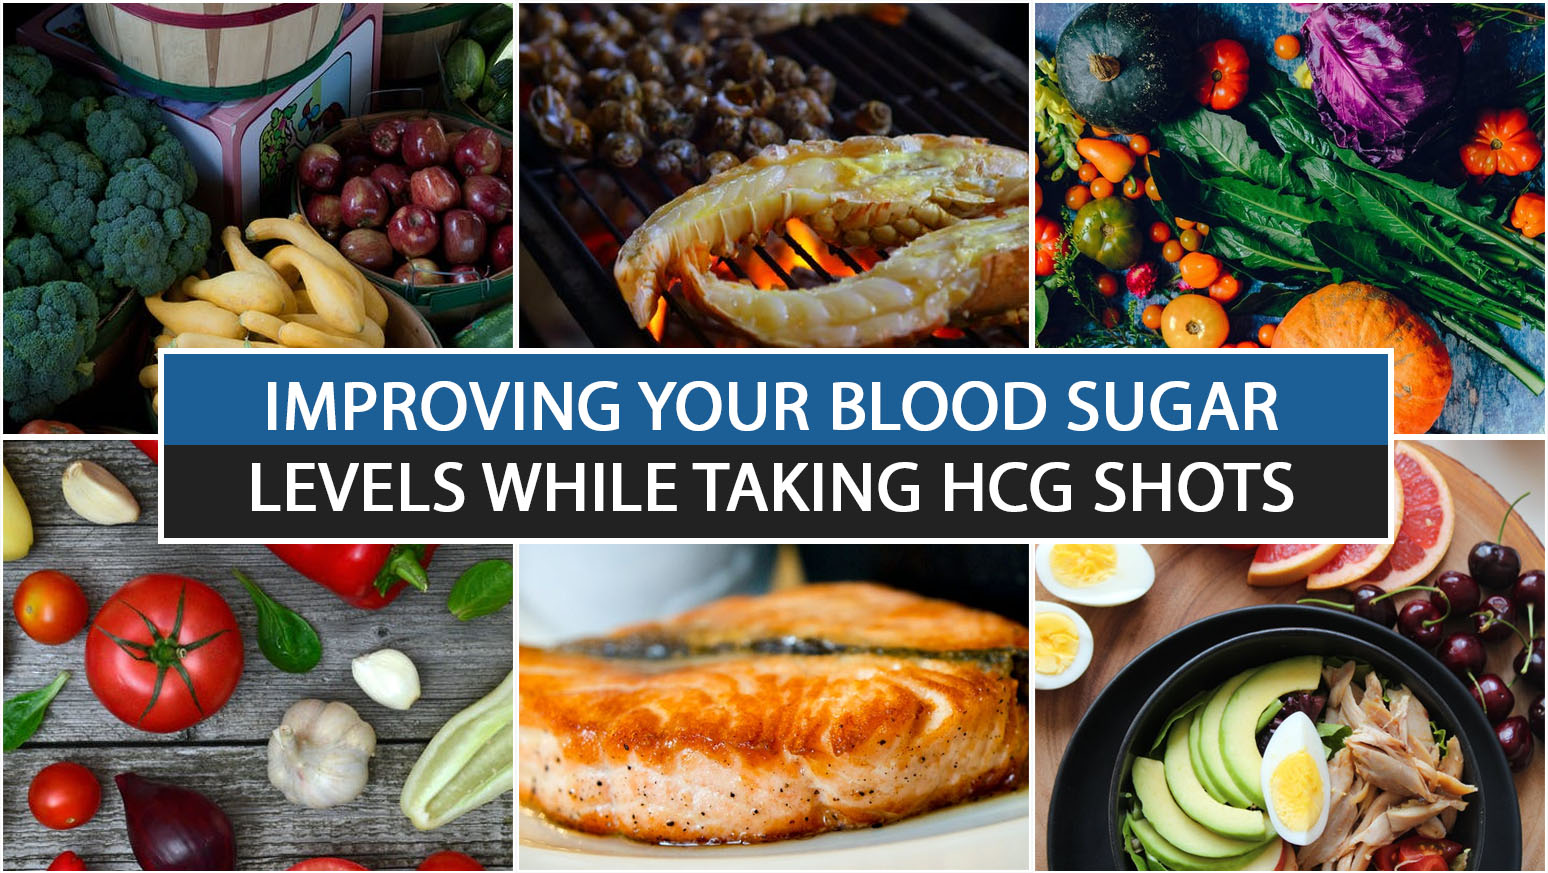 IMPROVING YOUR BLOOD SUGAR LEVELS WHILE TAKING HCG SHOTS